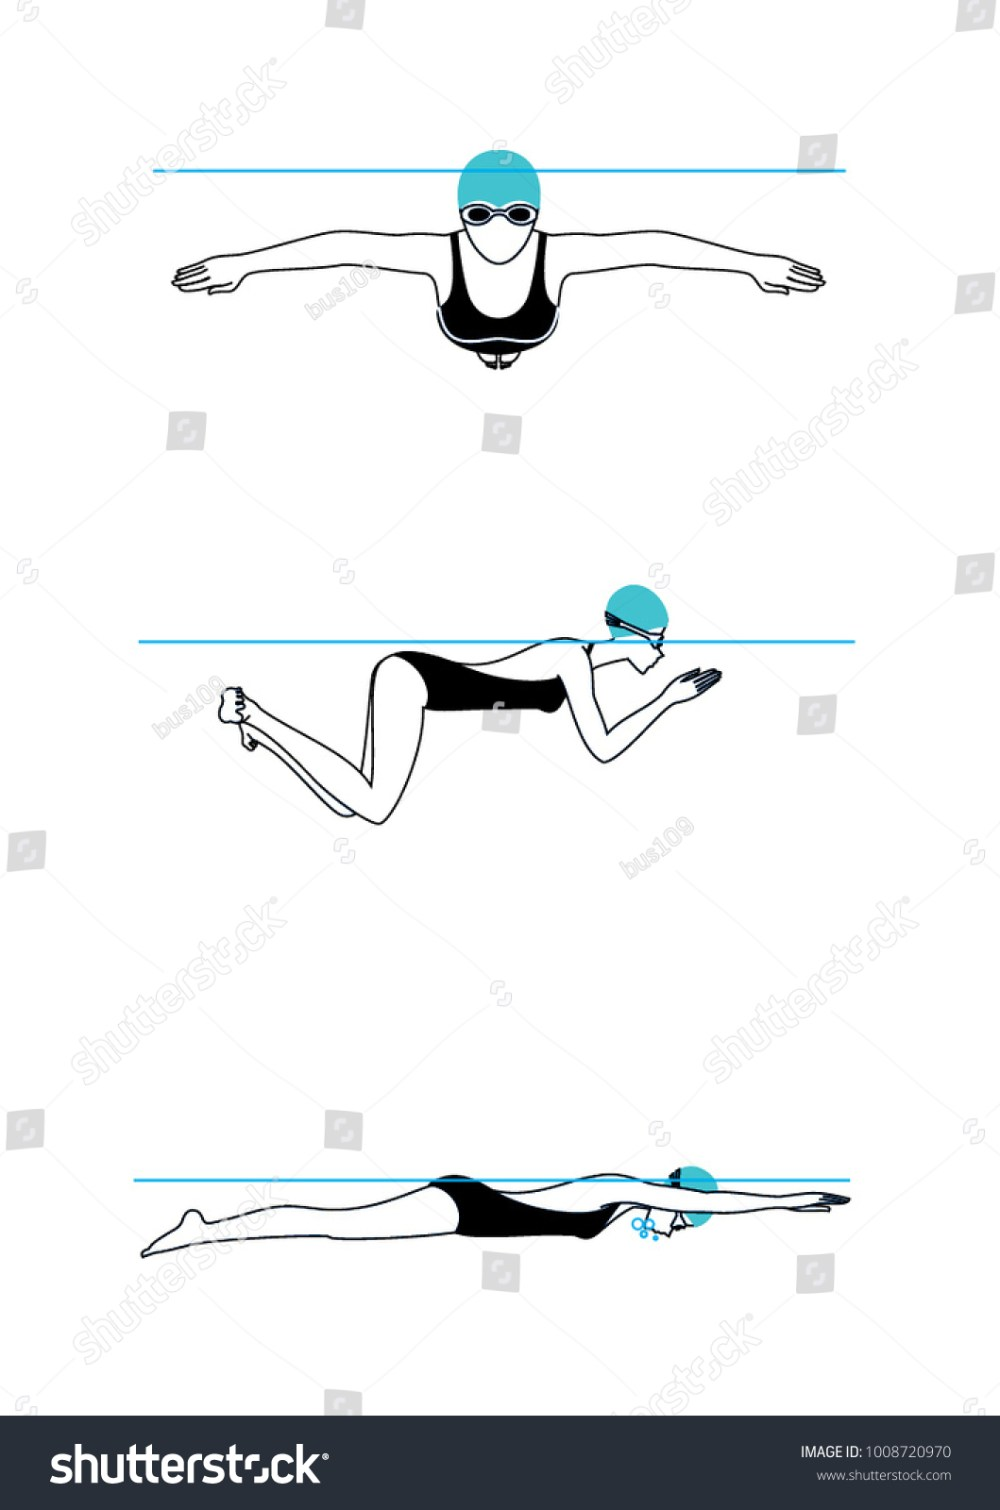 medium resolution of woman swimming brass technique step by step illustration set